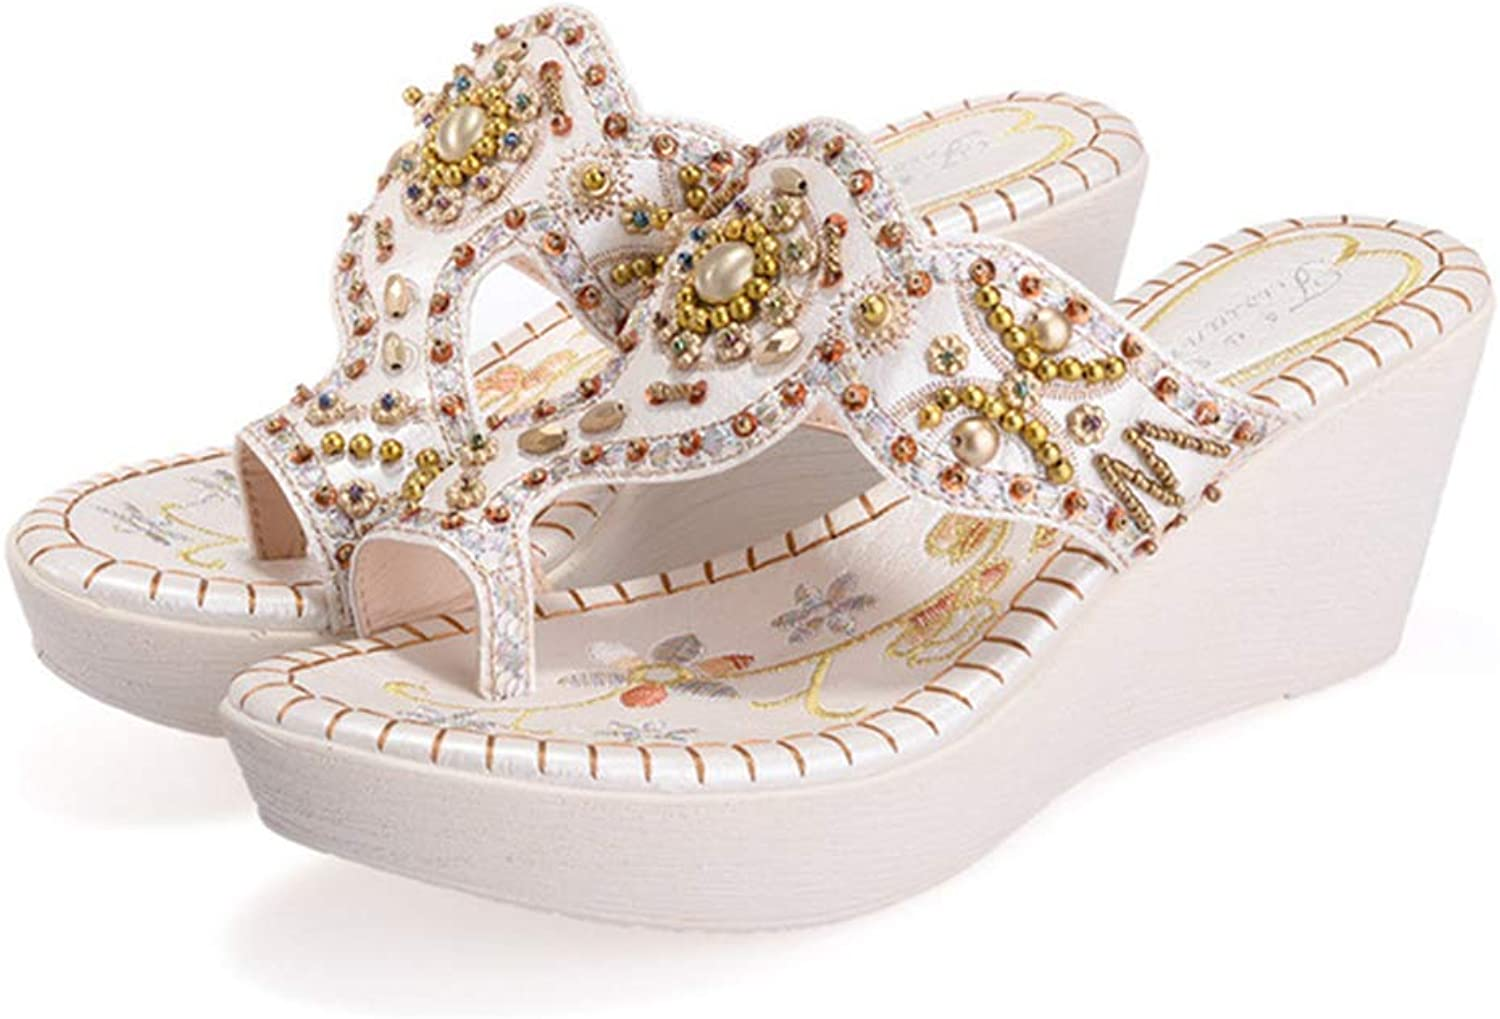 Baviue Womens Bling Beaded Leather Wedge Sandles Thong Sandals